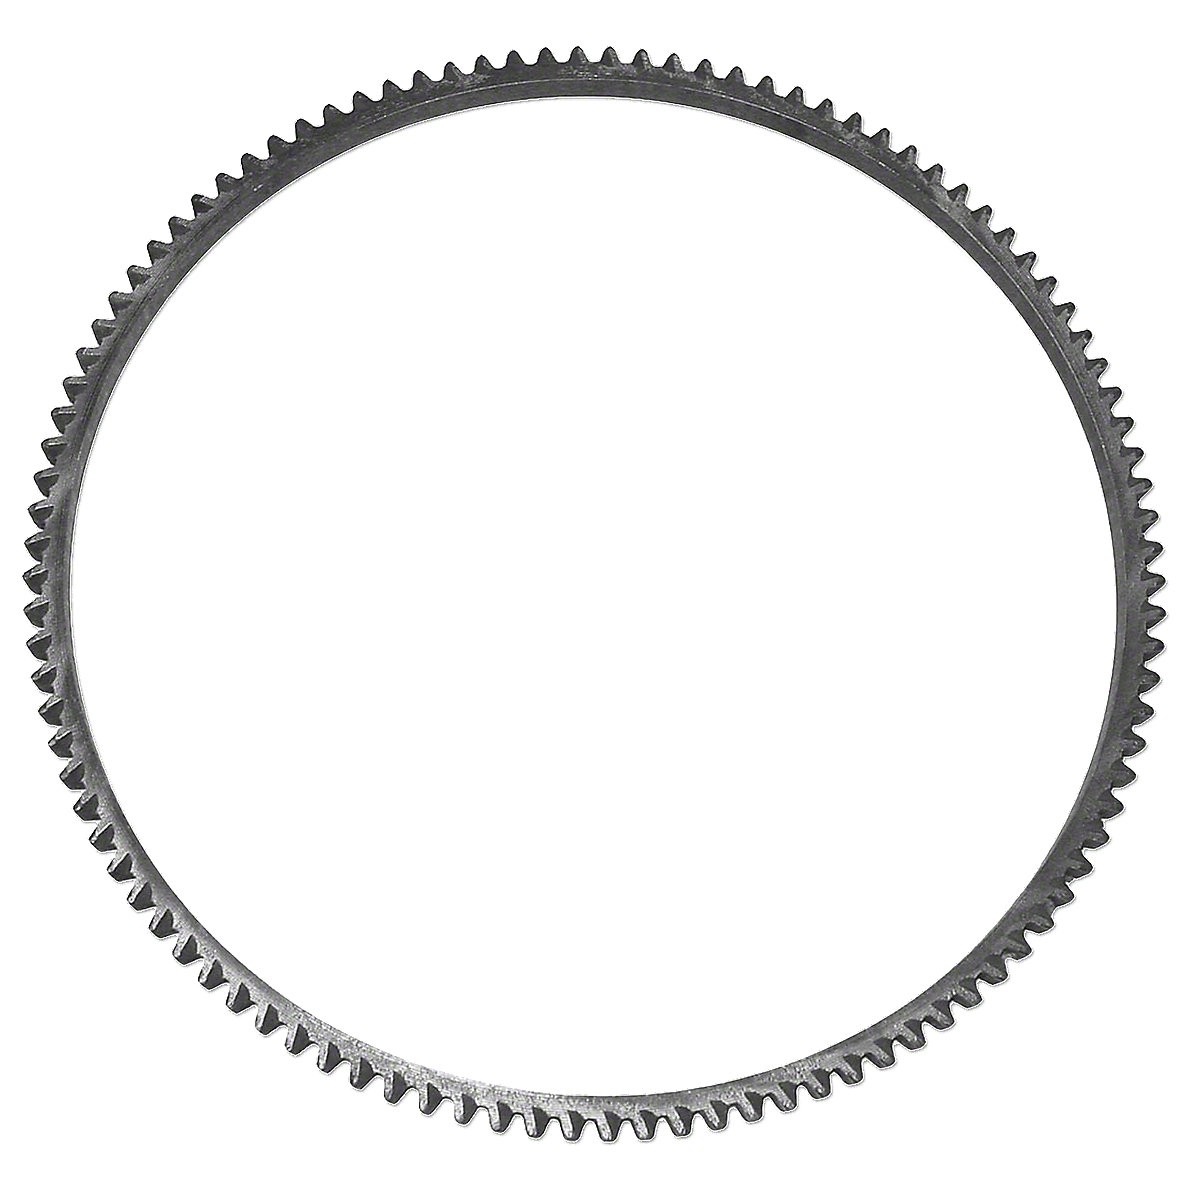 Flywheel Ring Gear For Massey Harris: Colt 21, Mustang 23, Mustang, 101 jr, 102 jr, 20, 22, 30, 81, 82.